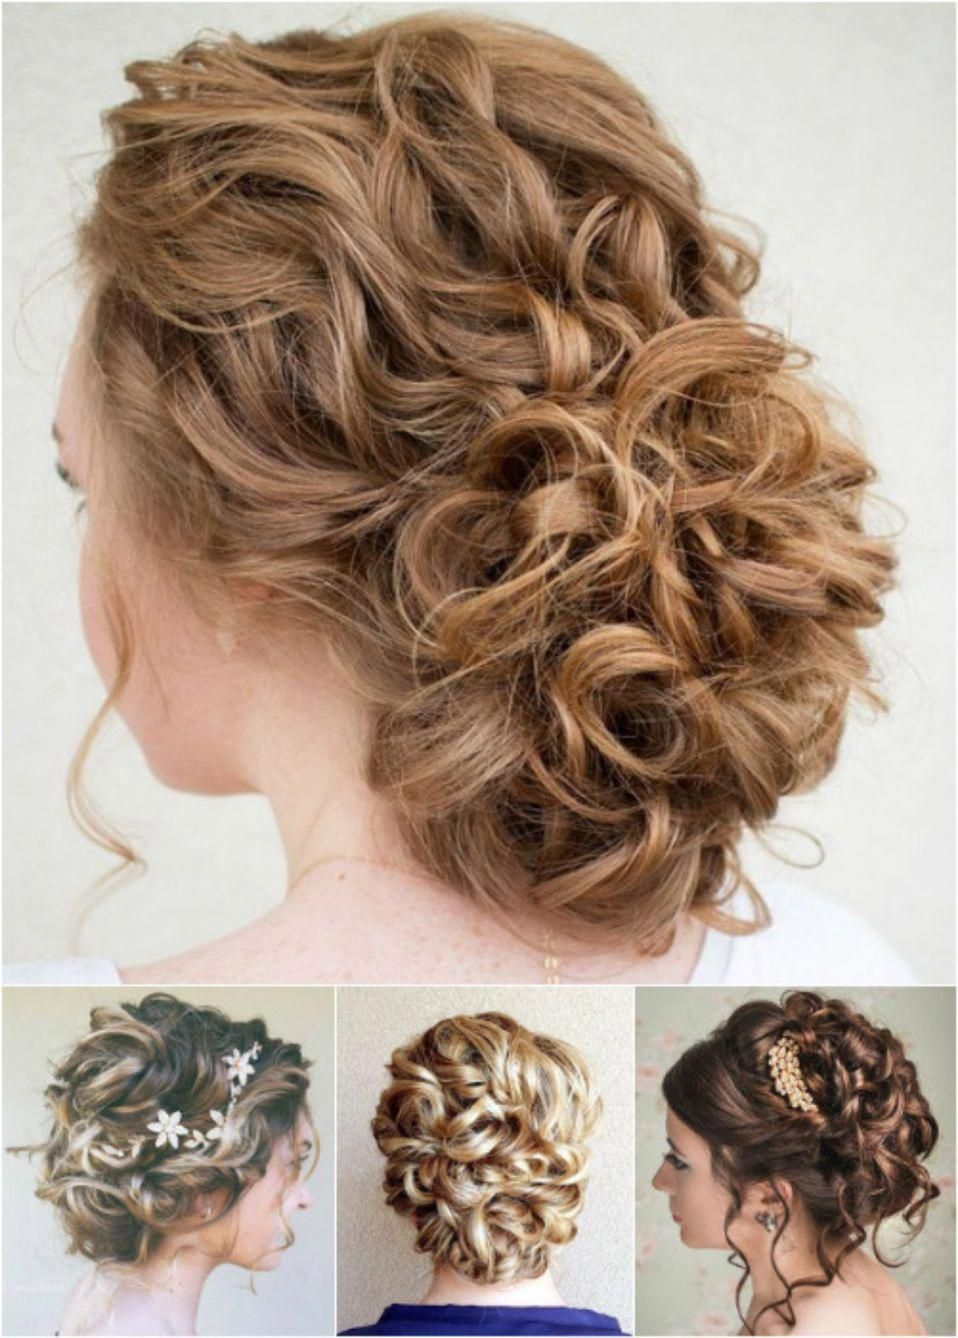 curly updos for medium length hair #Weddinghairstyles | Wedding ...